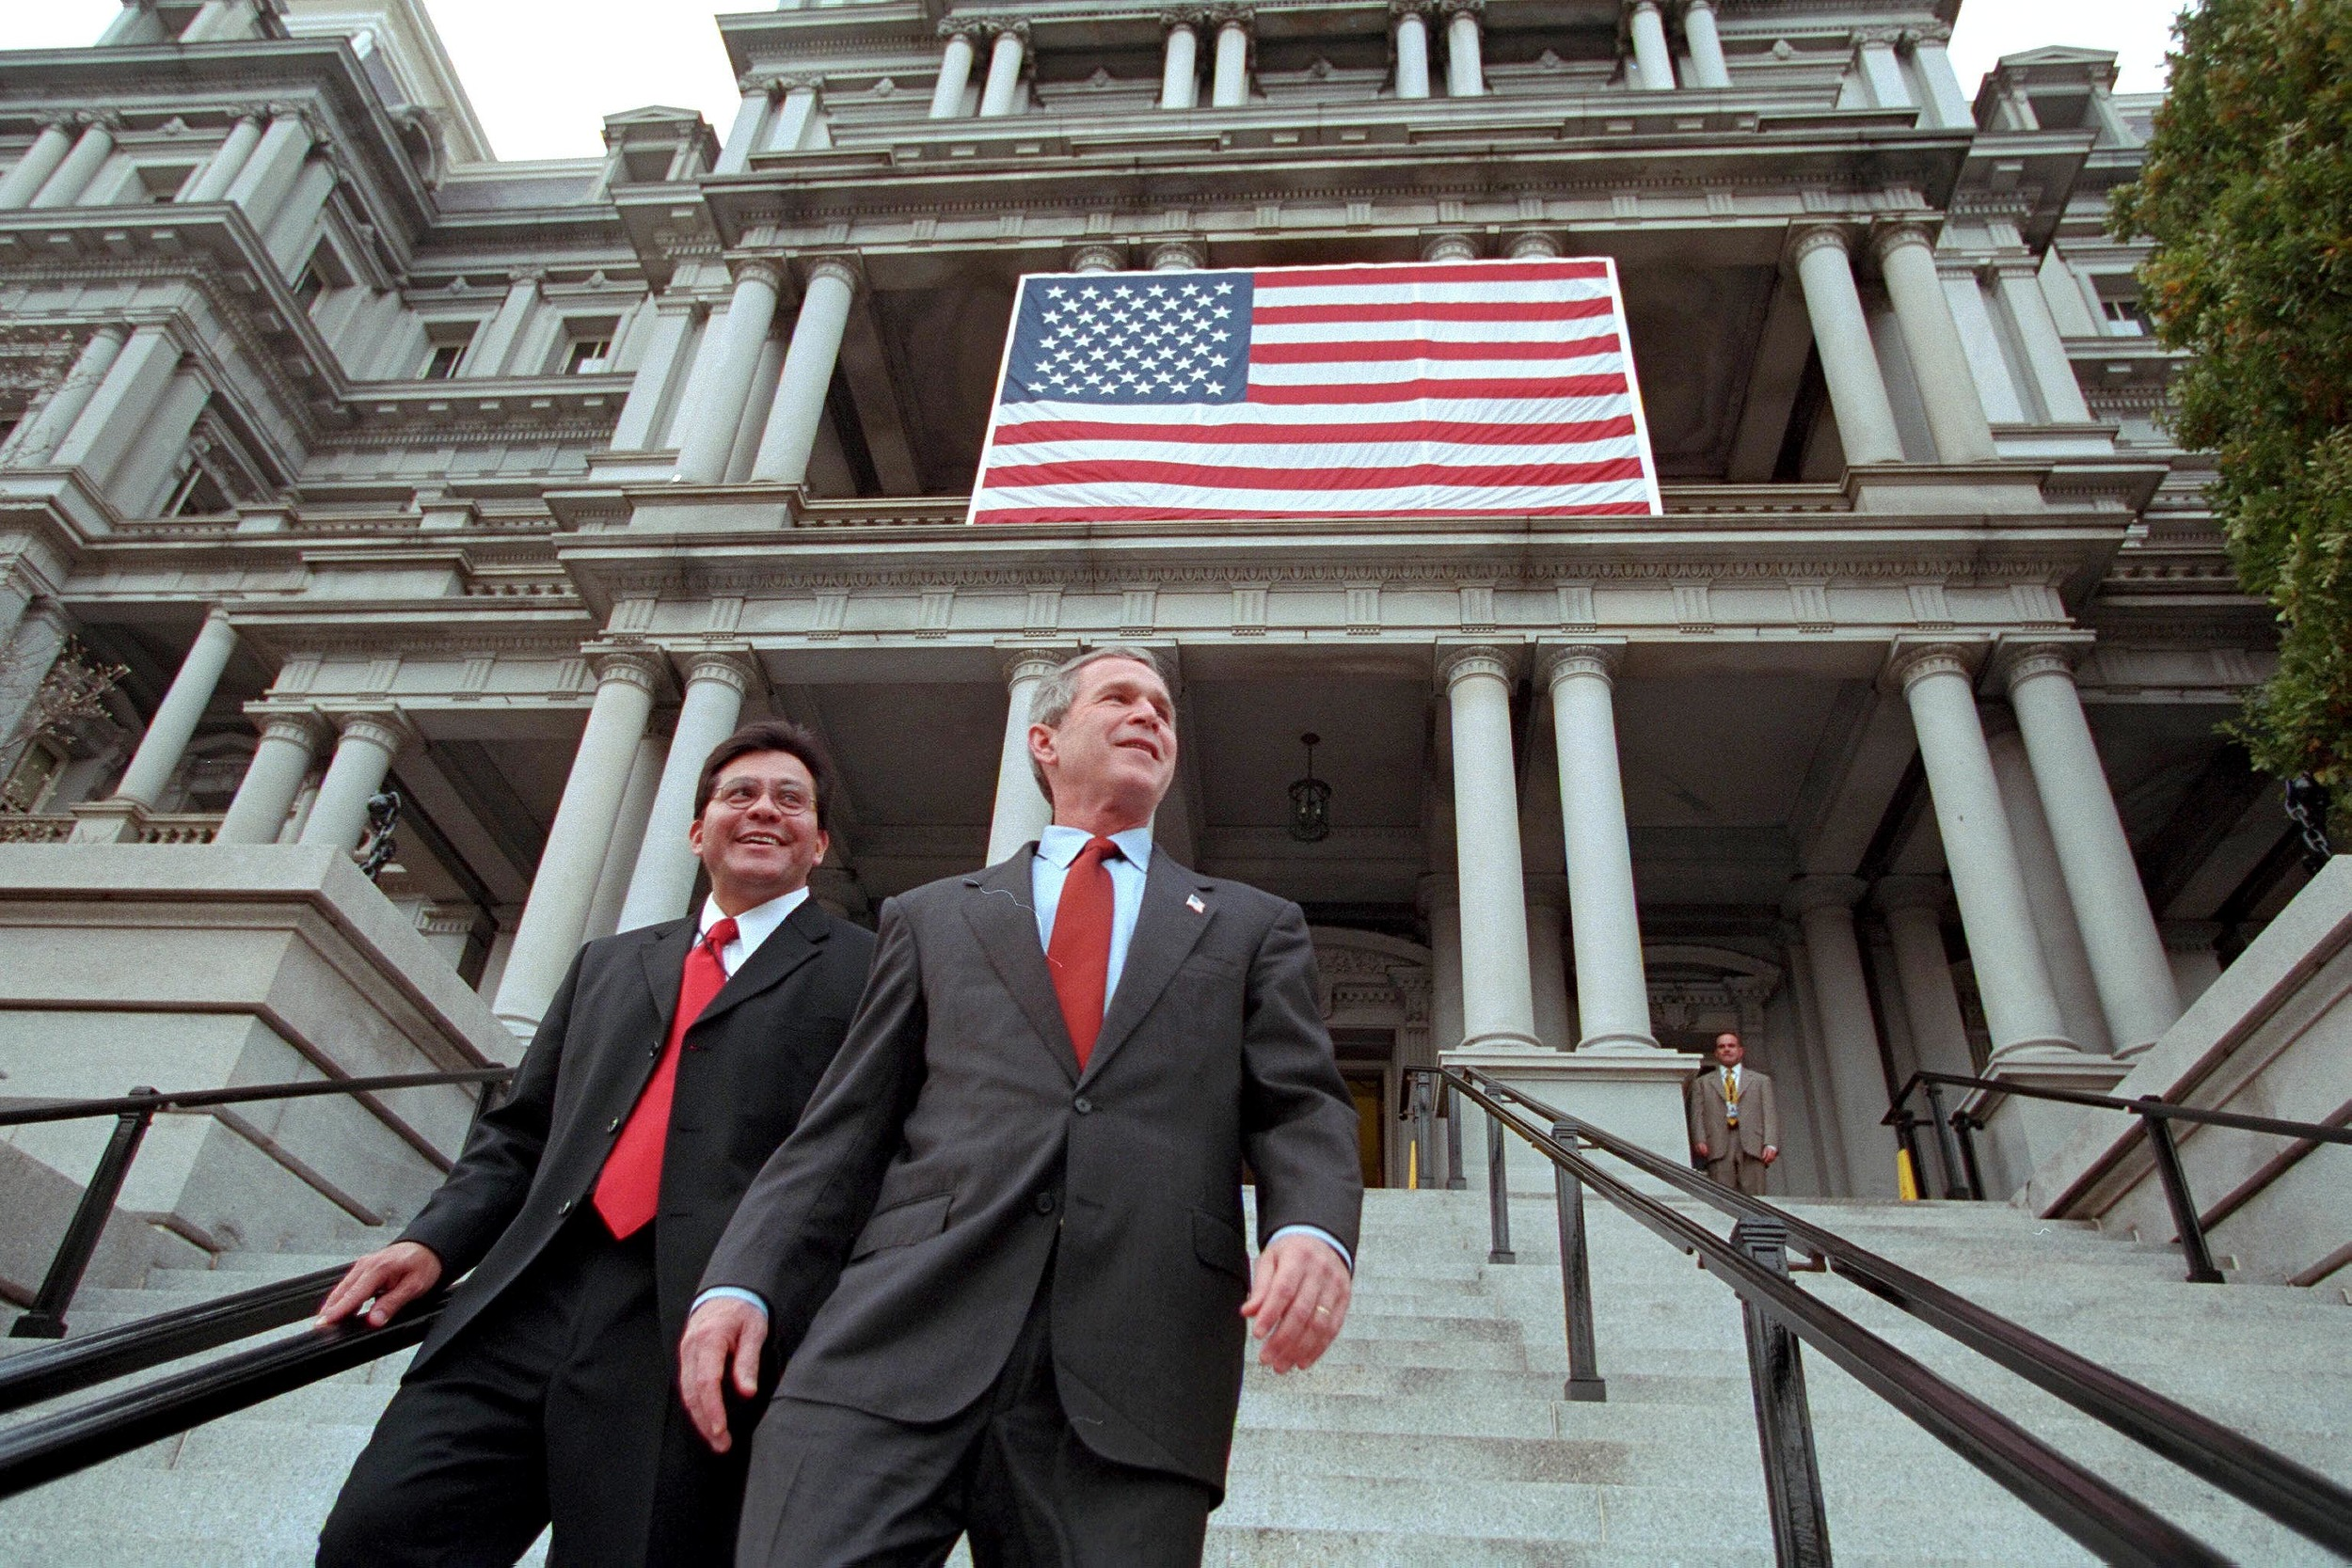 President George W. Bush & Alberto Gonzales, Old Executive Office Building